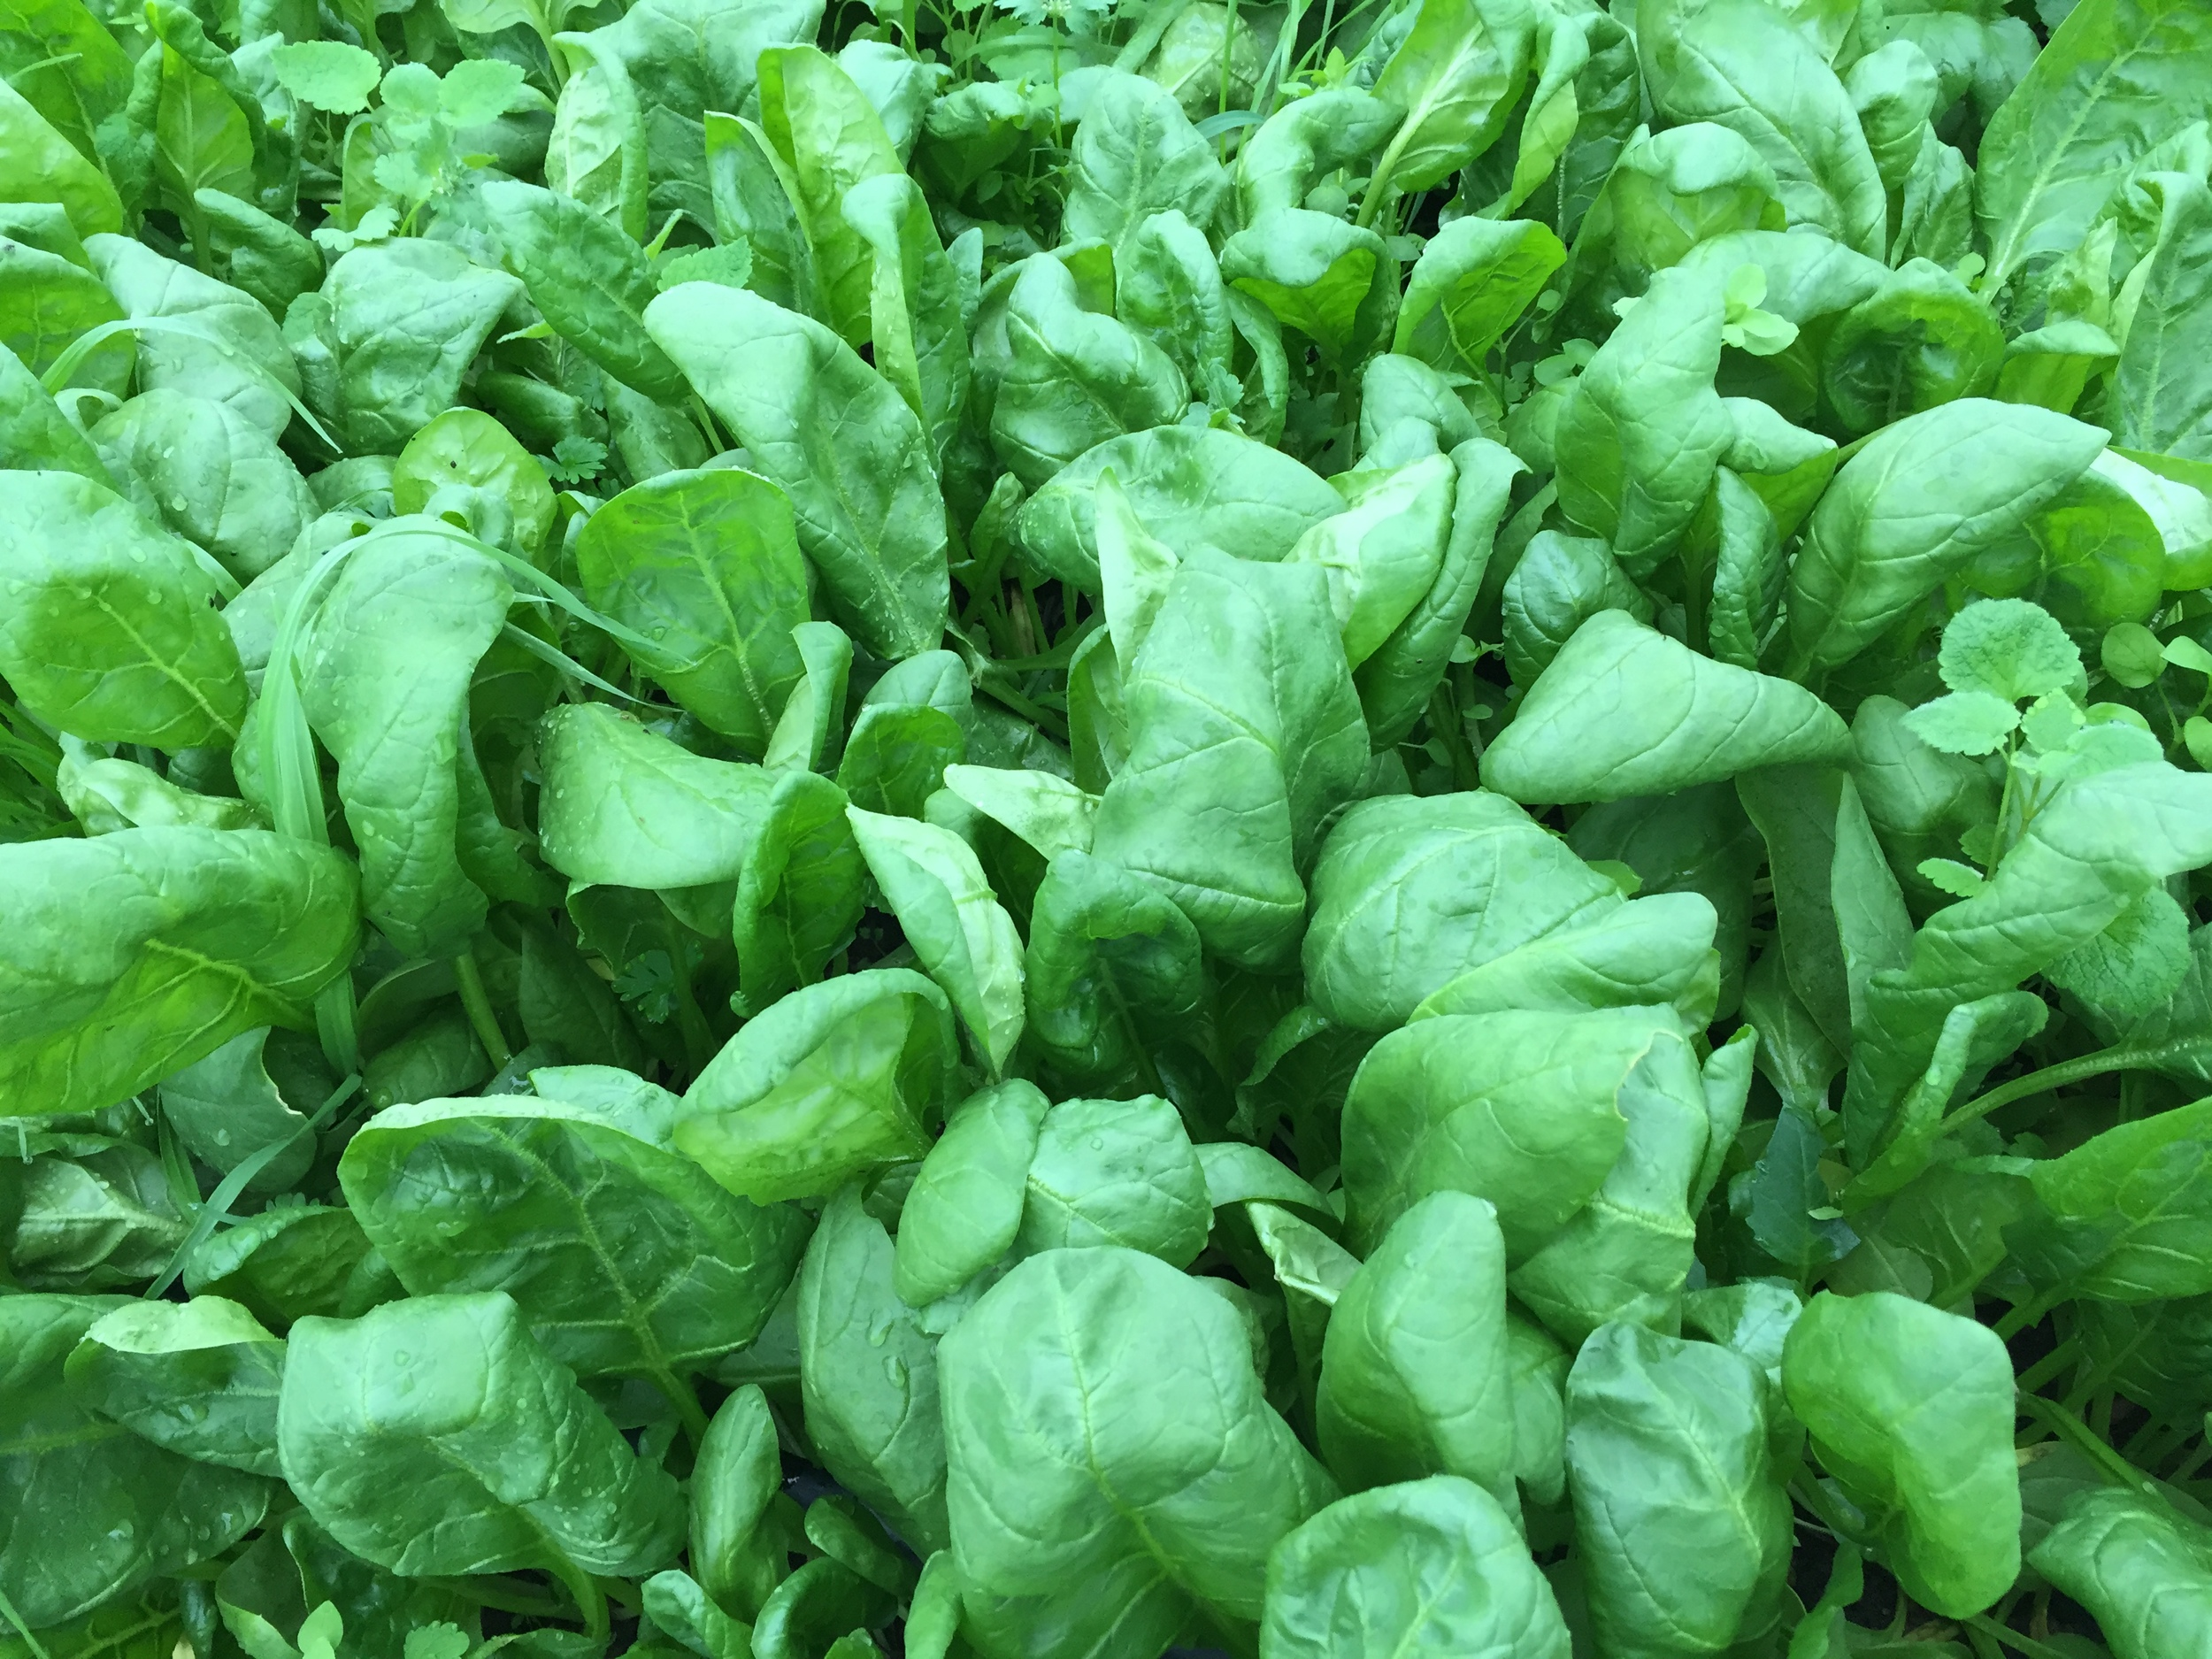 A healthy bed of spinach